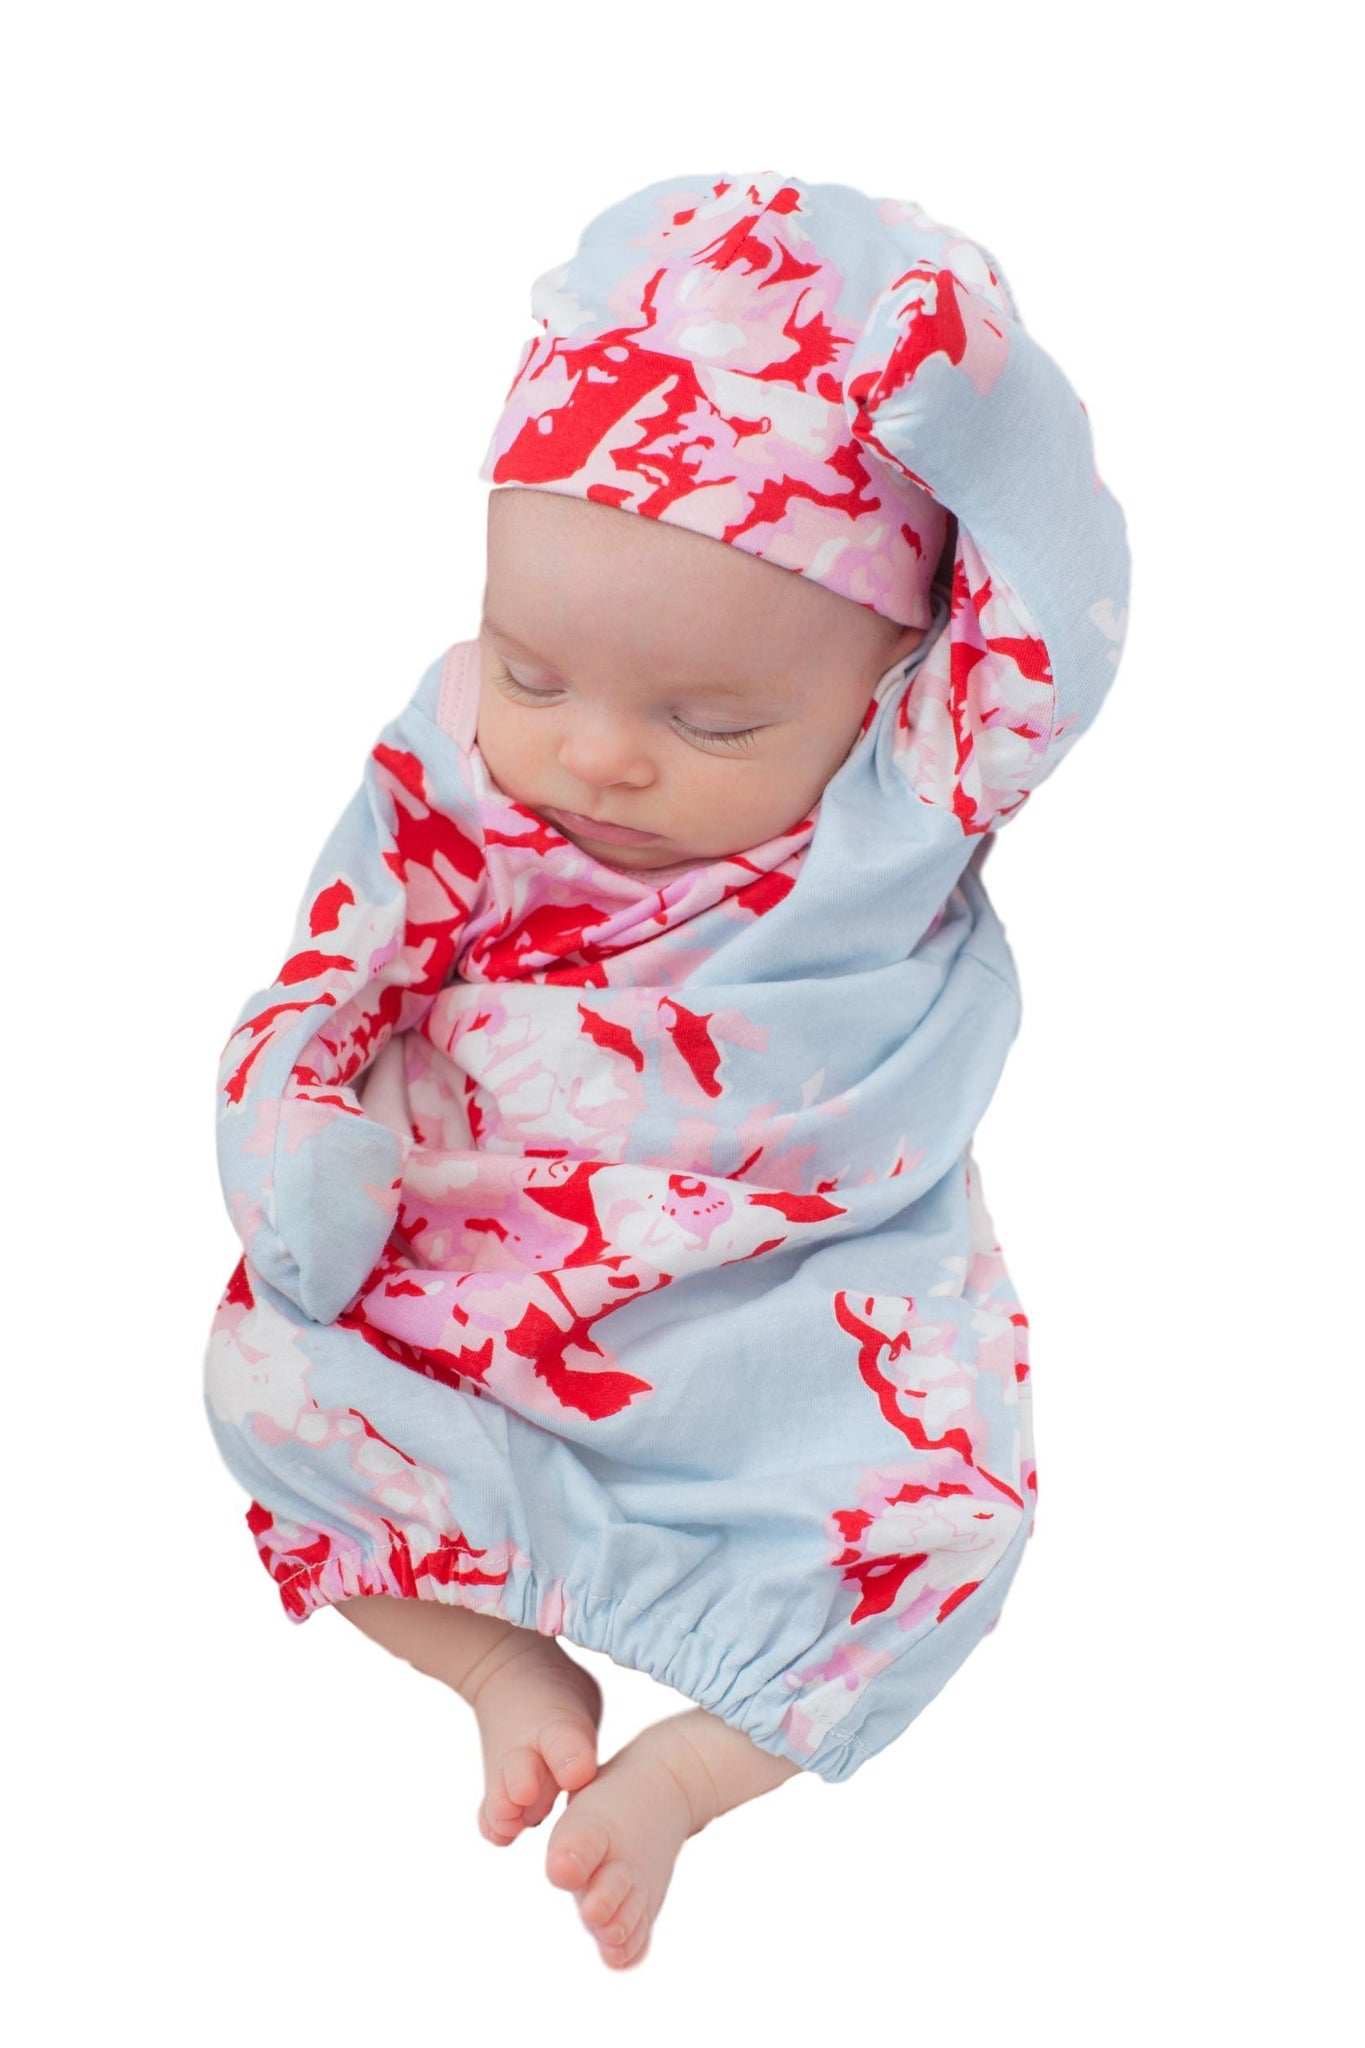 d7b4a11affbe6 ... Mae Floral 3 in 1 Maternity Labor Delivery Nursing Gown & Matching  Newborn Romper Set